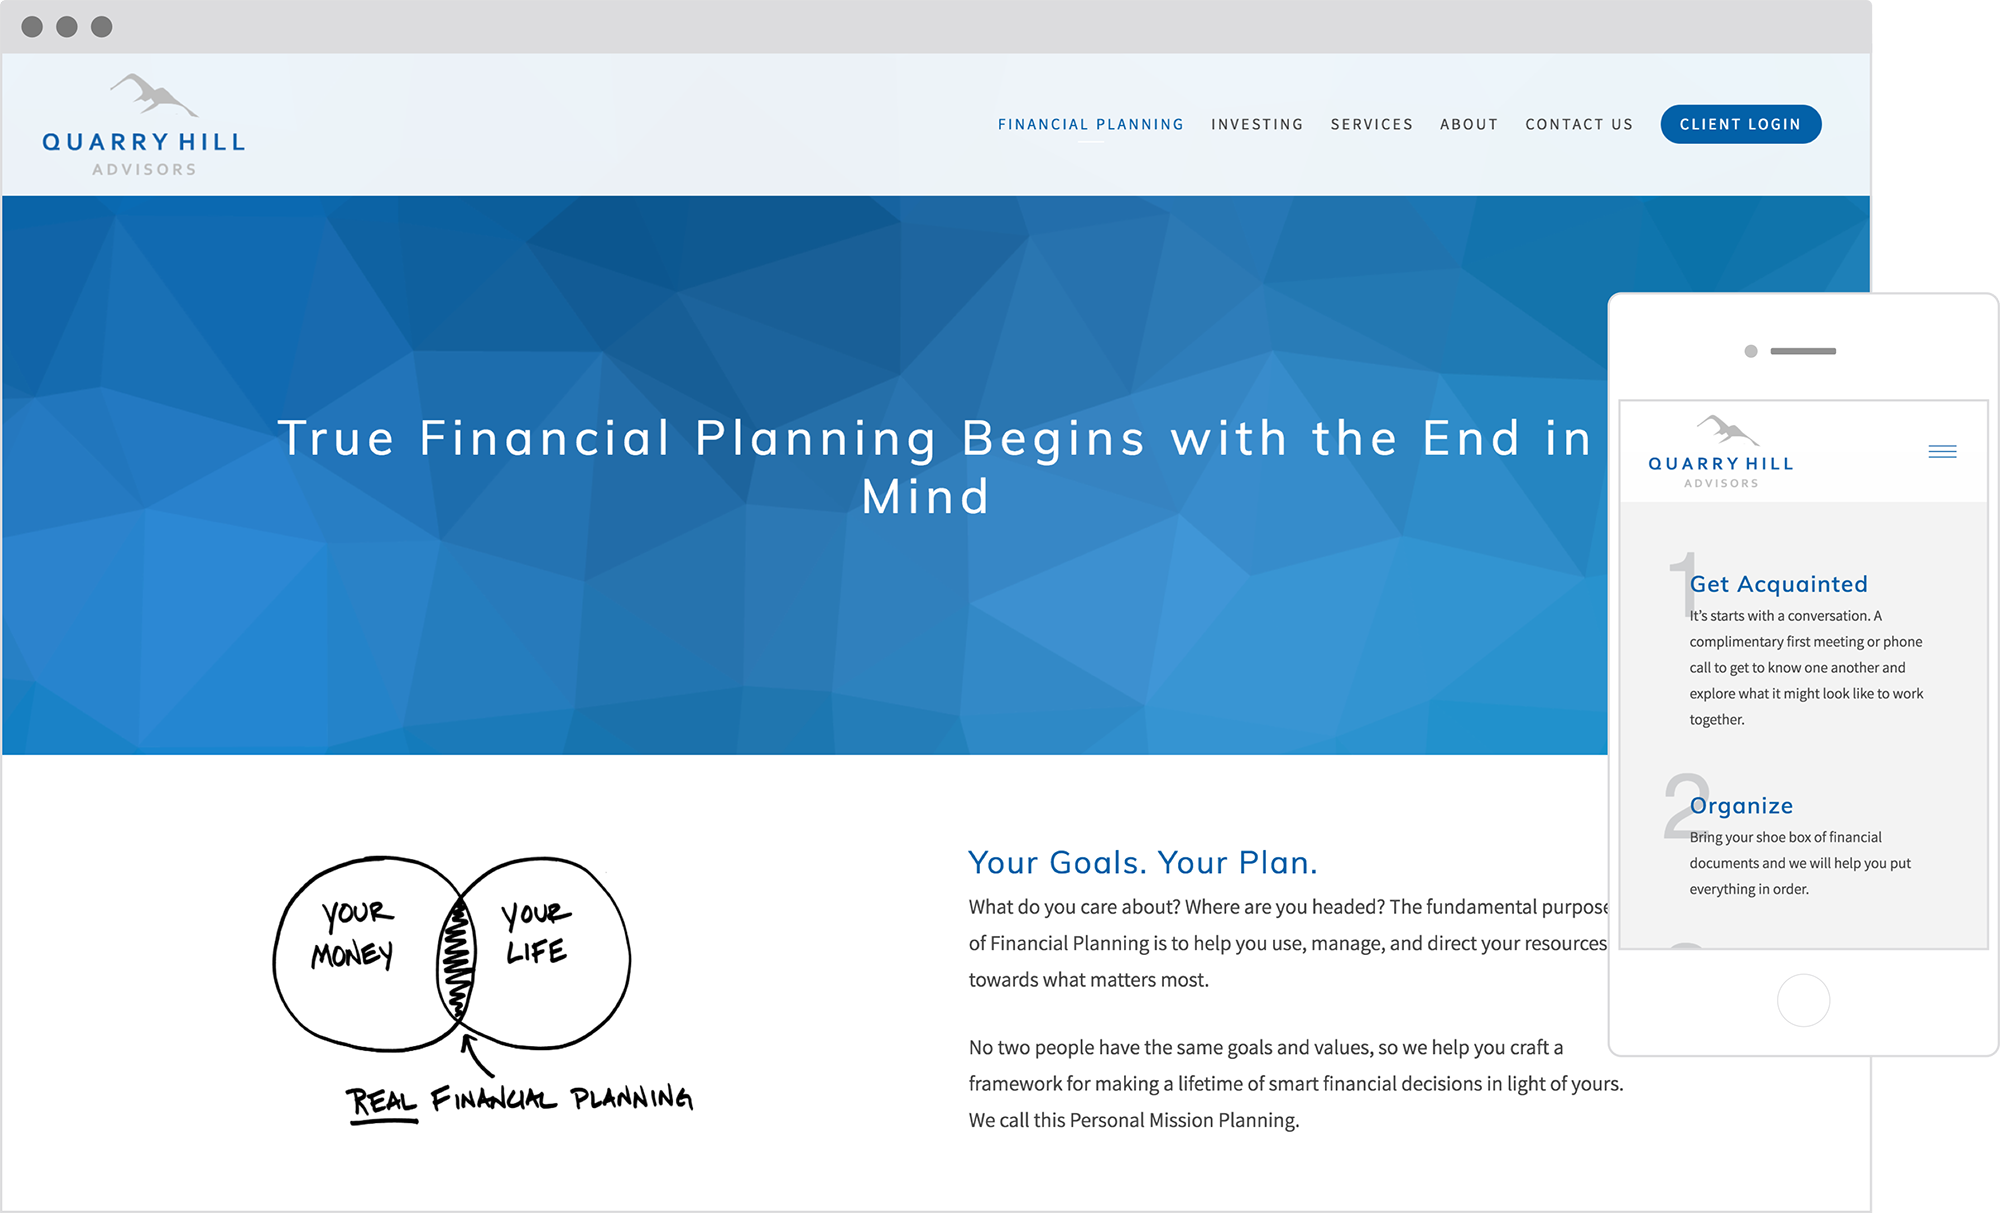 best financial advisor websites: quarry hill advisors